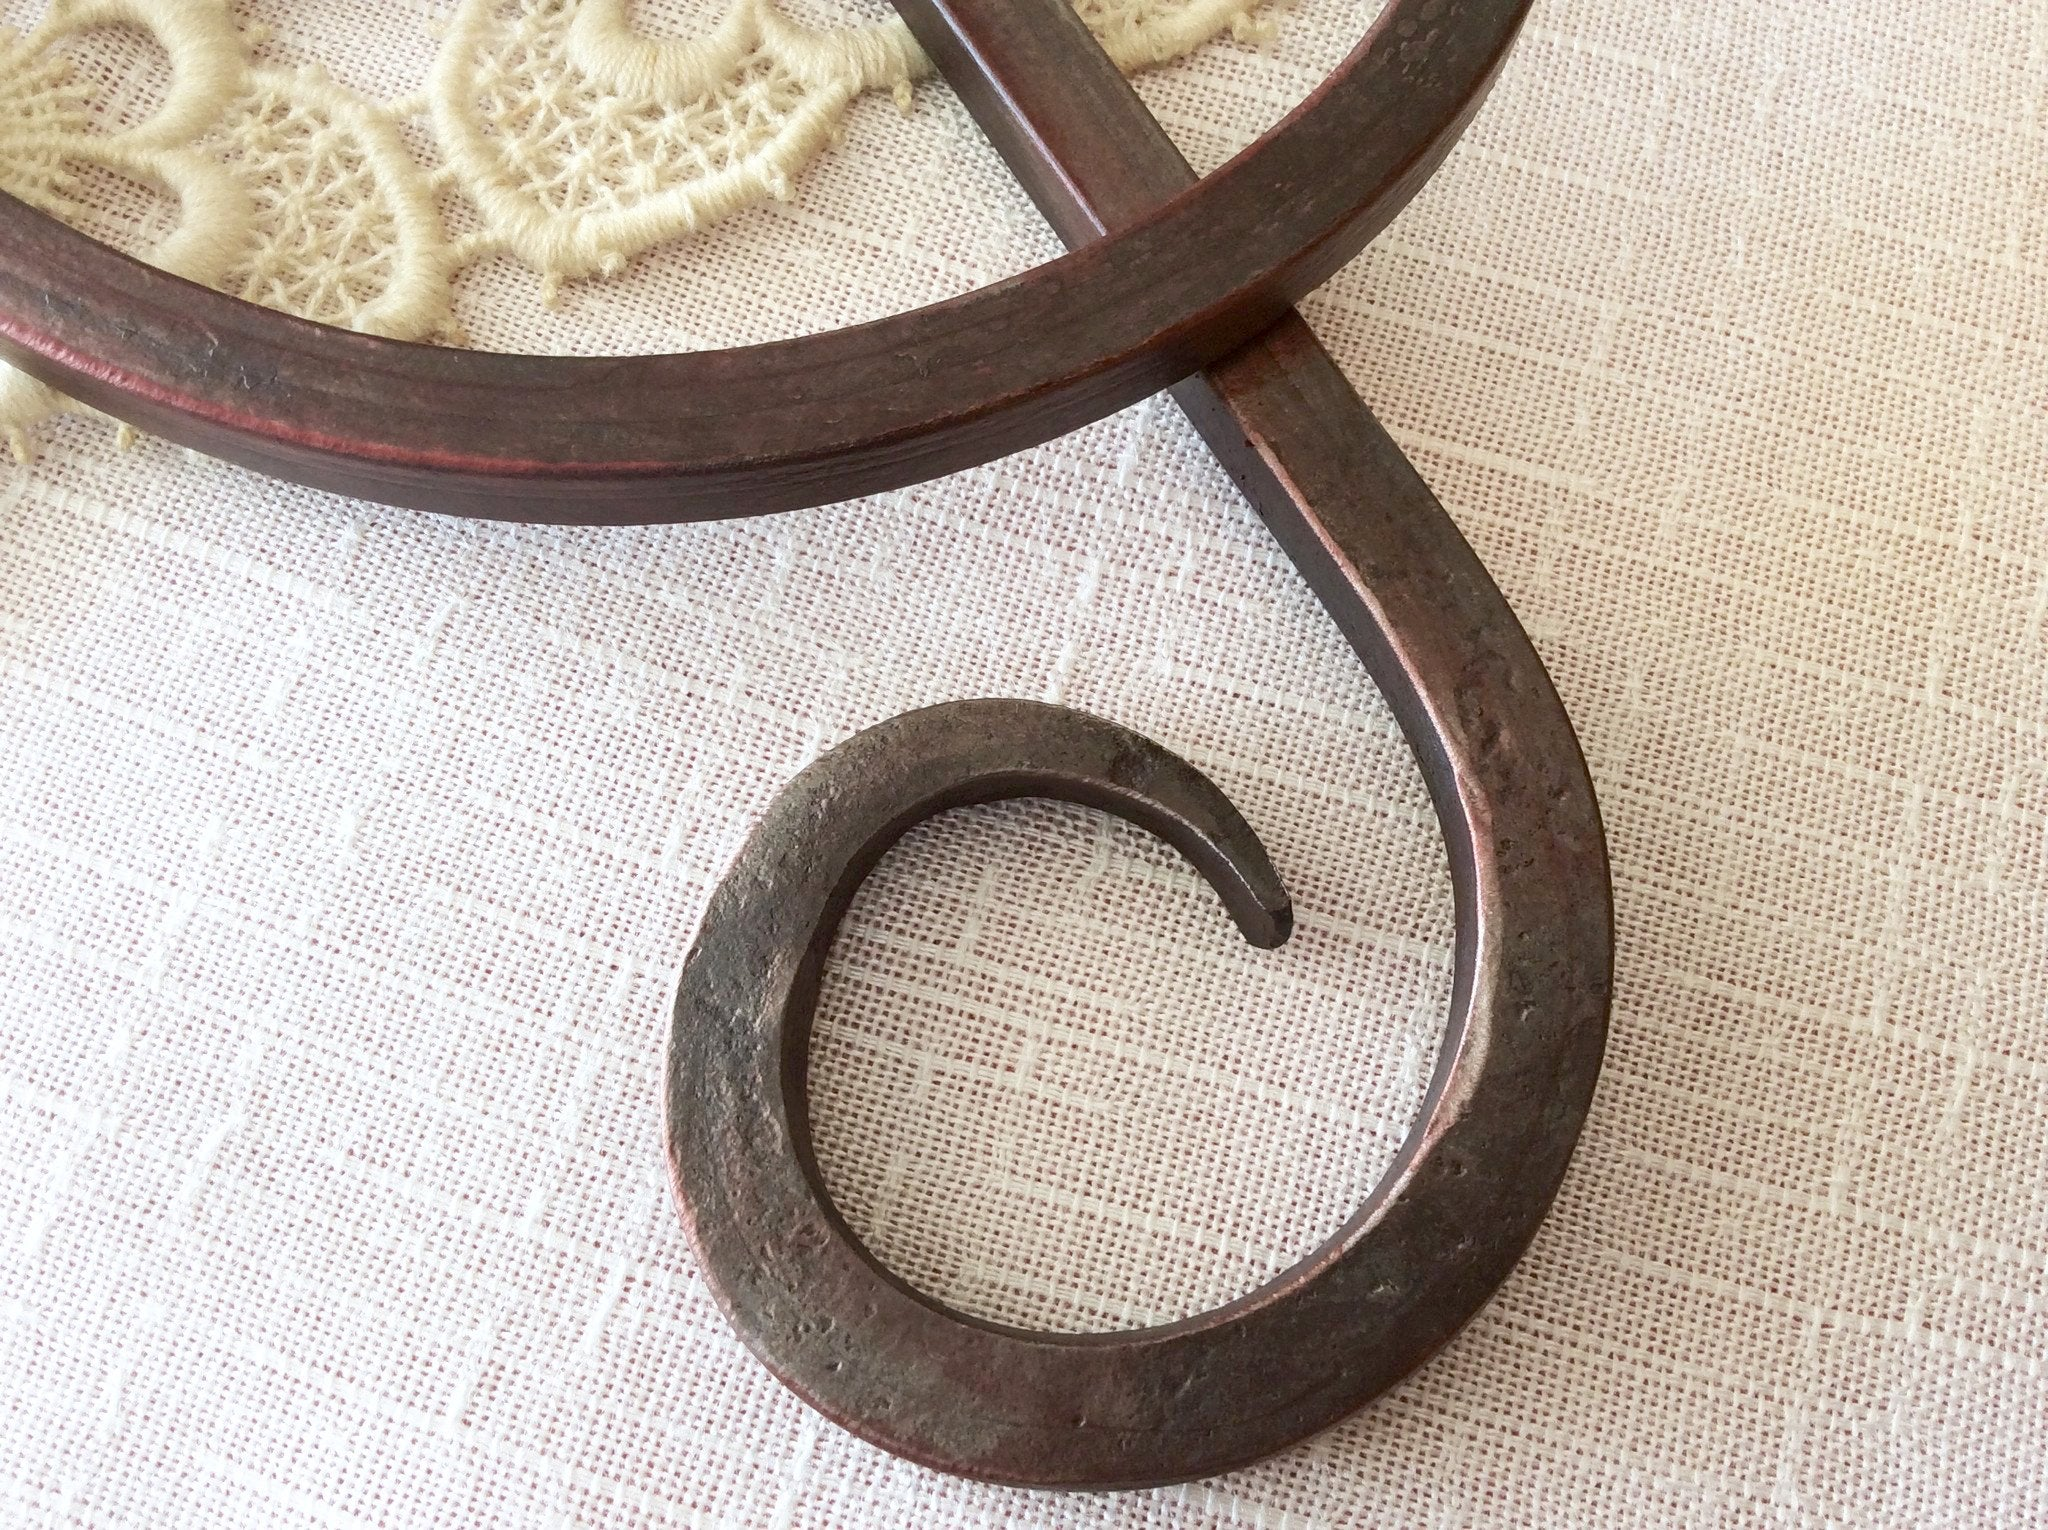 This tail of the forged iron treble clef shows the marks of the fire and hammer through the translucent red finish.